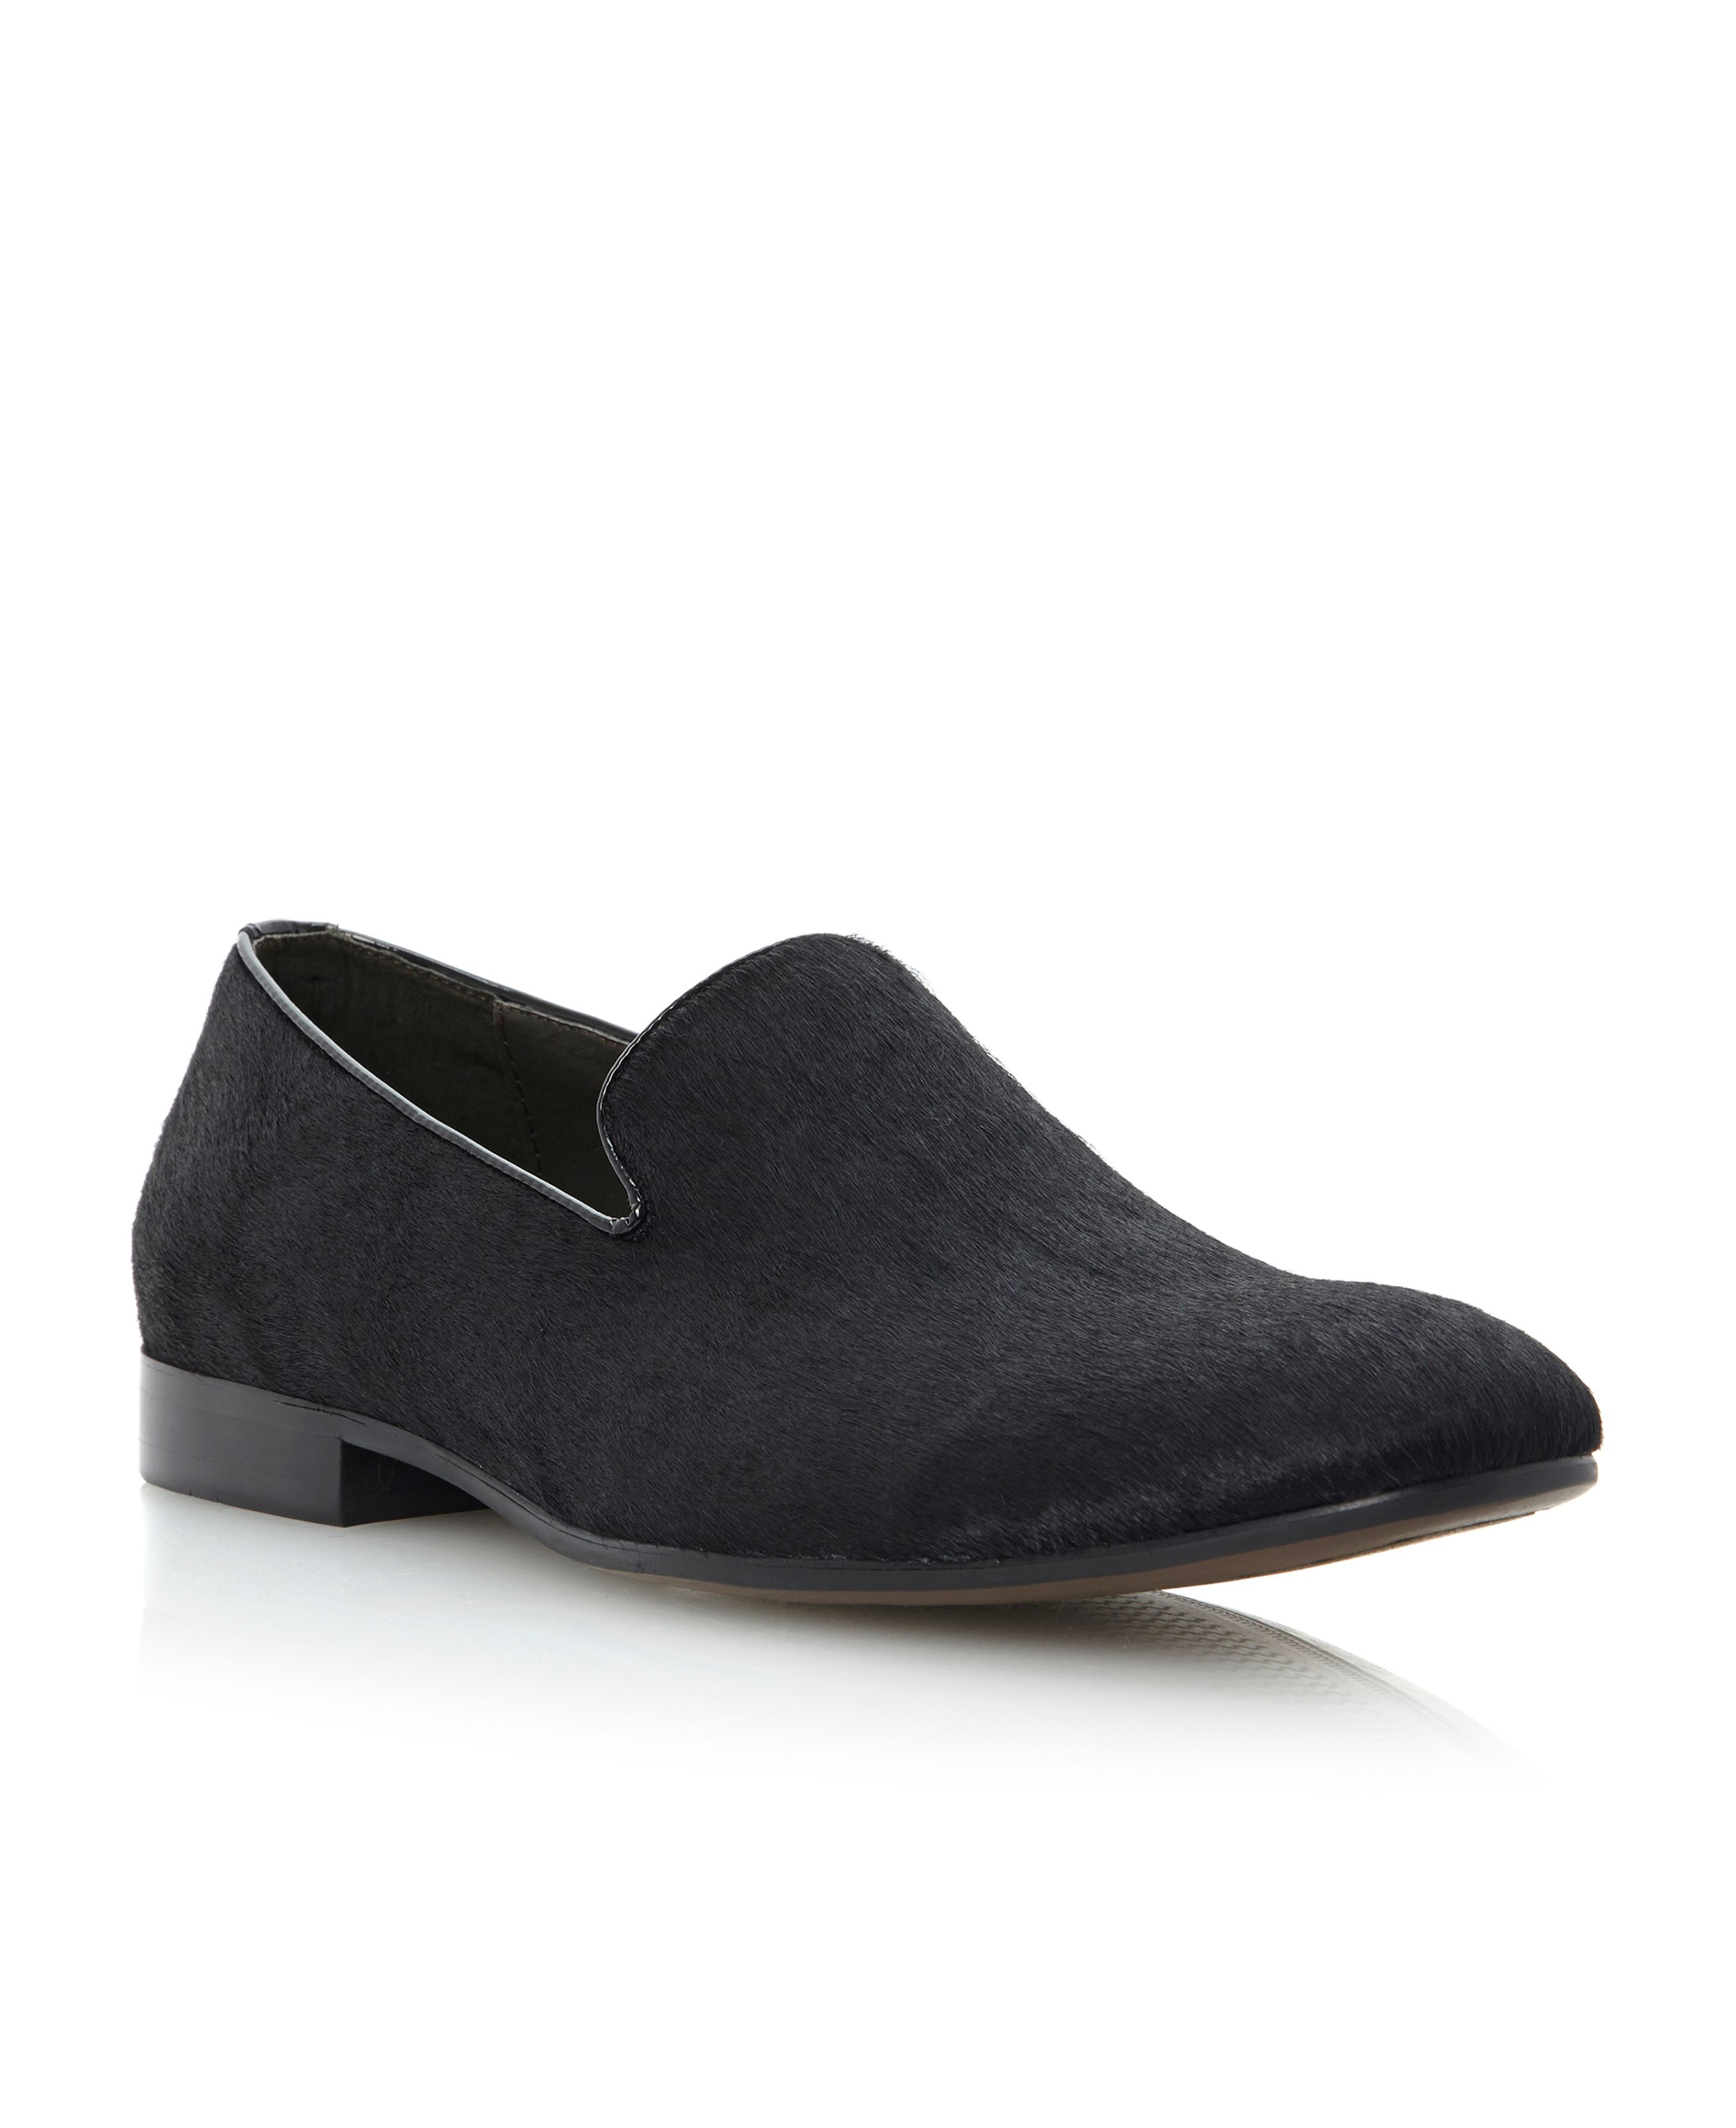 Apony slipper-cut pony shoe